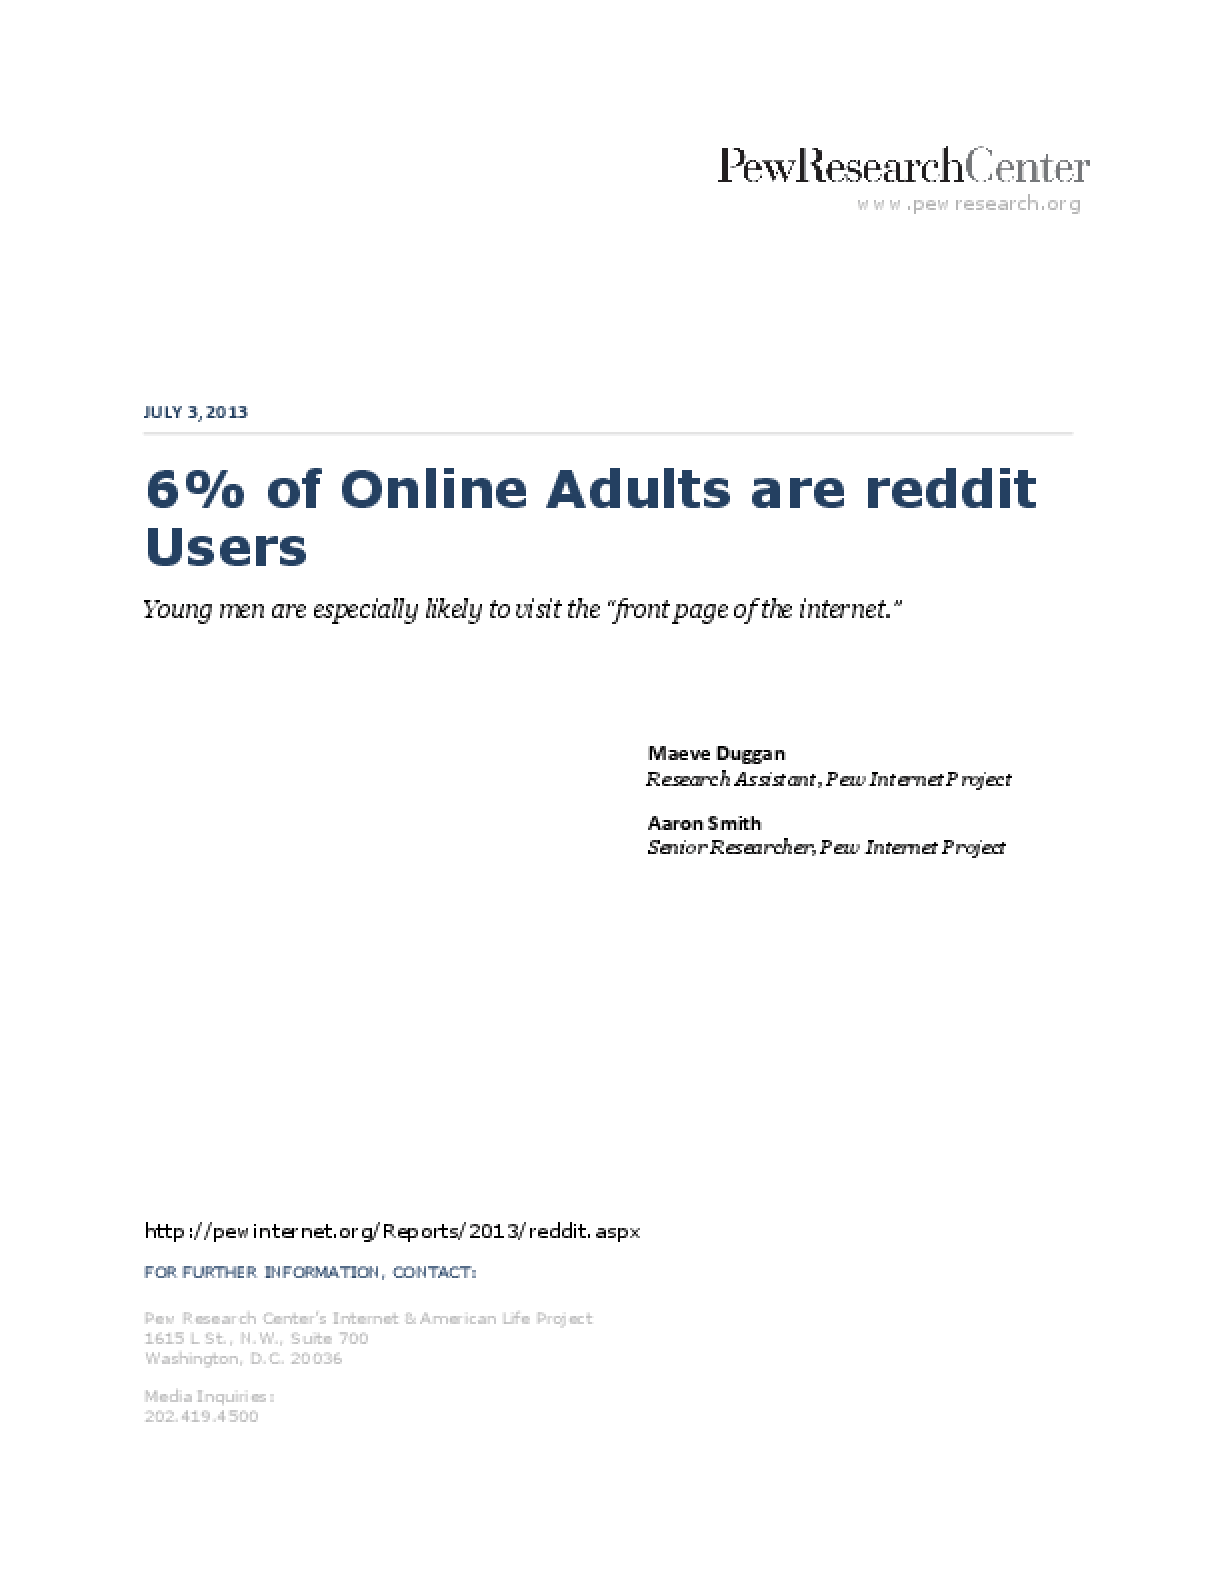 6% of Online Adults are reddit Users